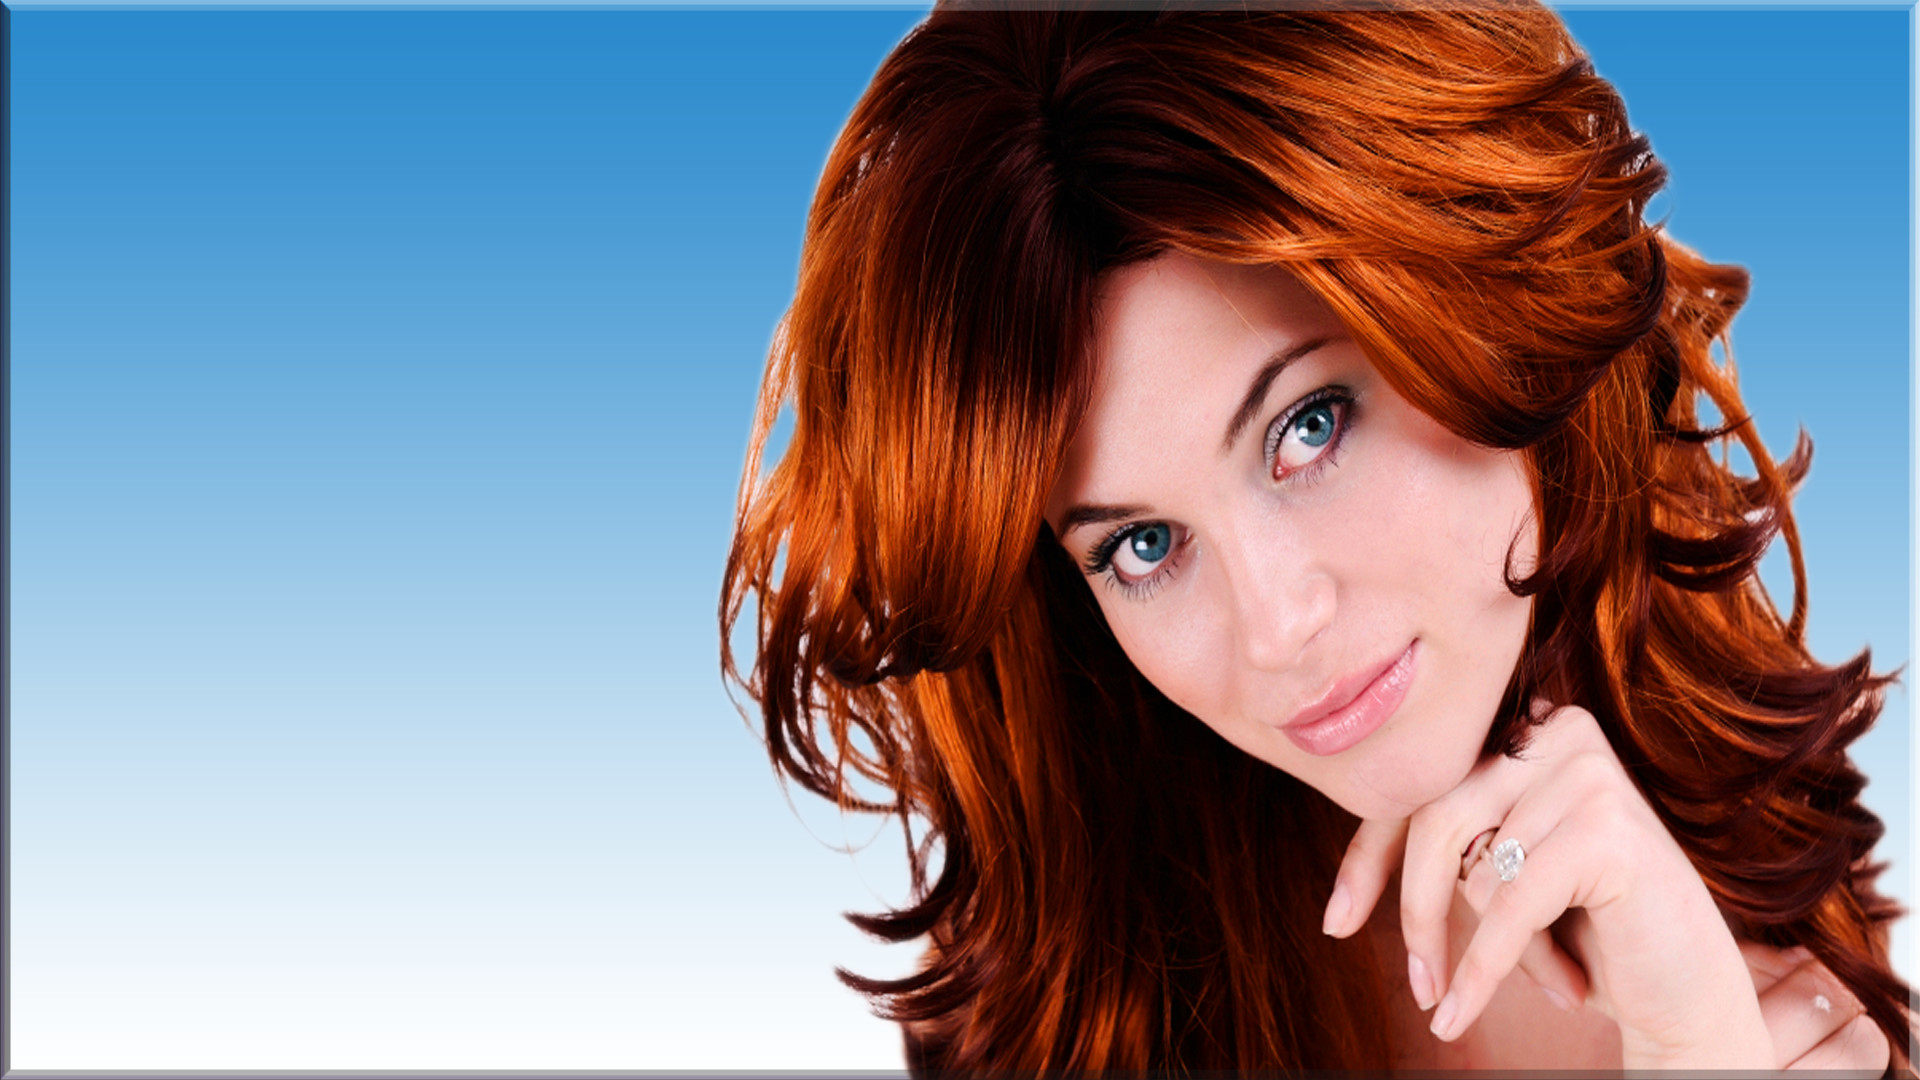 Res: 1920x1080, Women - Model Redhead Woman Wallpaper